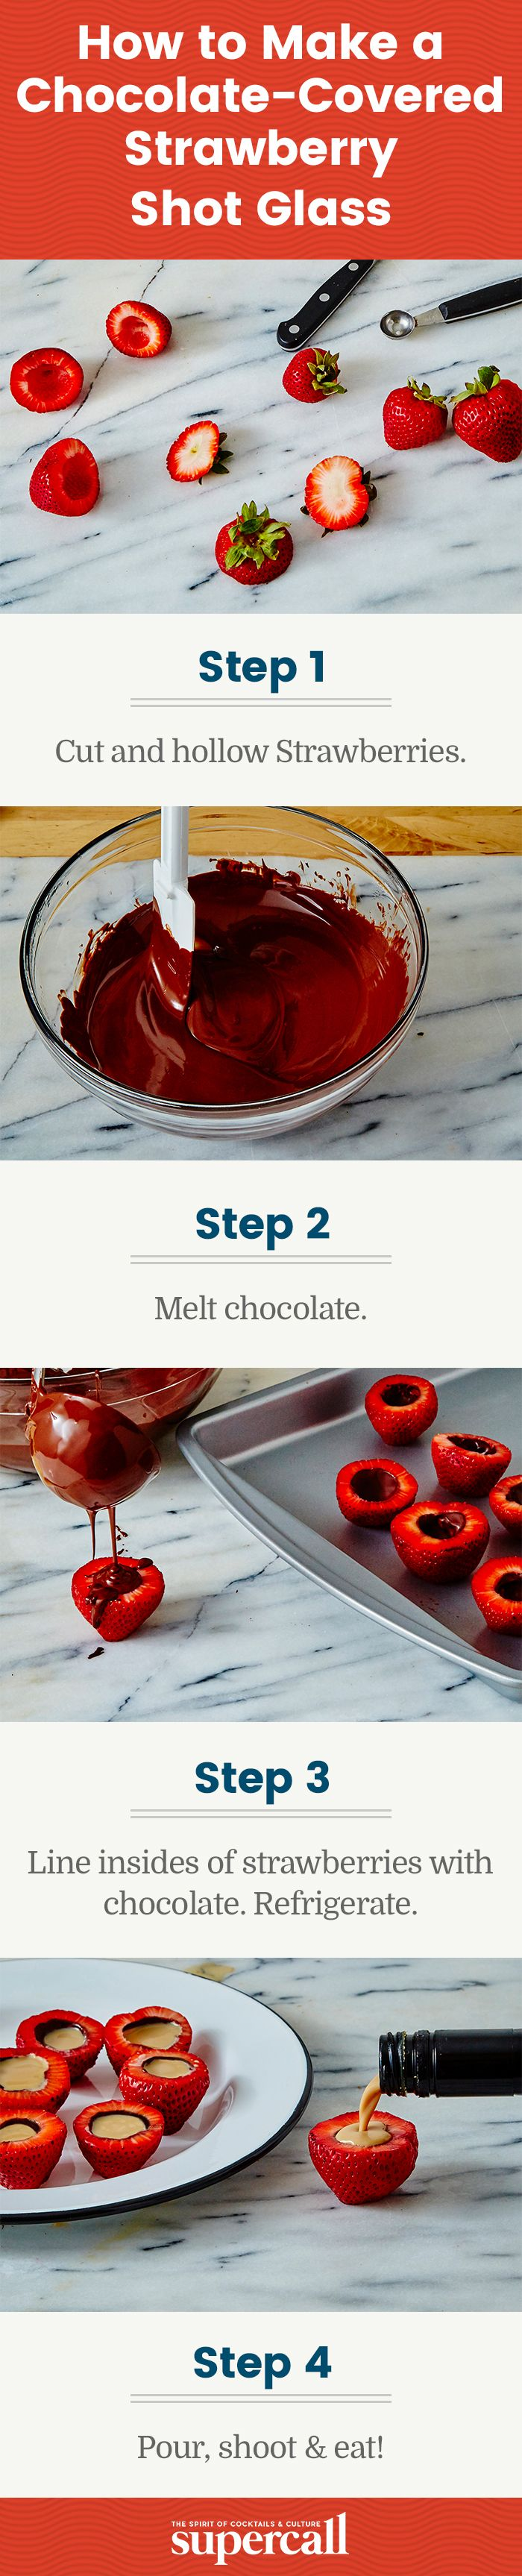 These chocolate-lined strawberry shot glasses are easy to make and downright delicious, especially when filled with a spirit that complements the cocoa-berry flavors (think bittersweet amari or creamy liqueurs). Plus, they provide you with that healthy serving of fruit your doctor is always going on about.